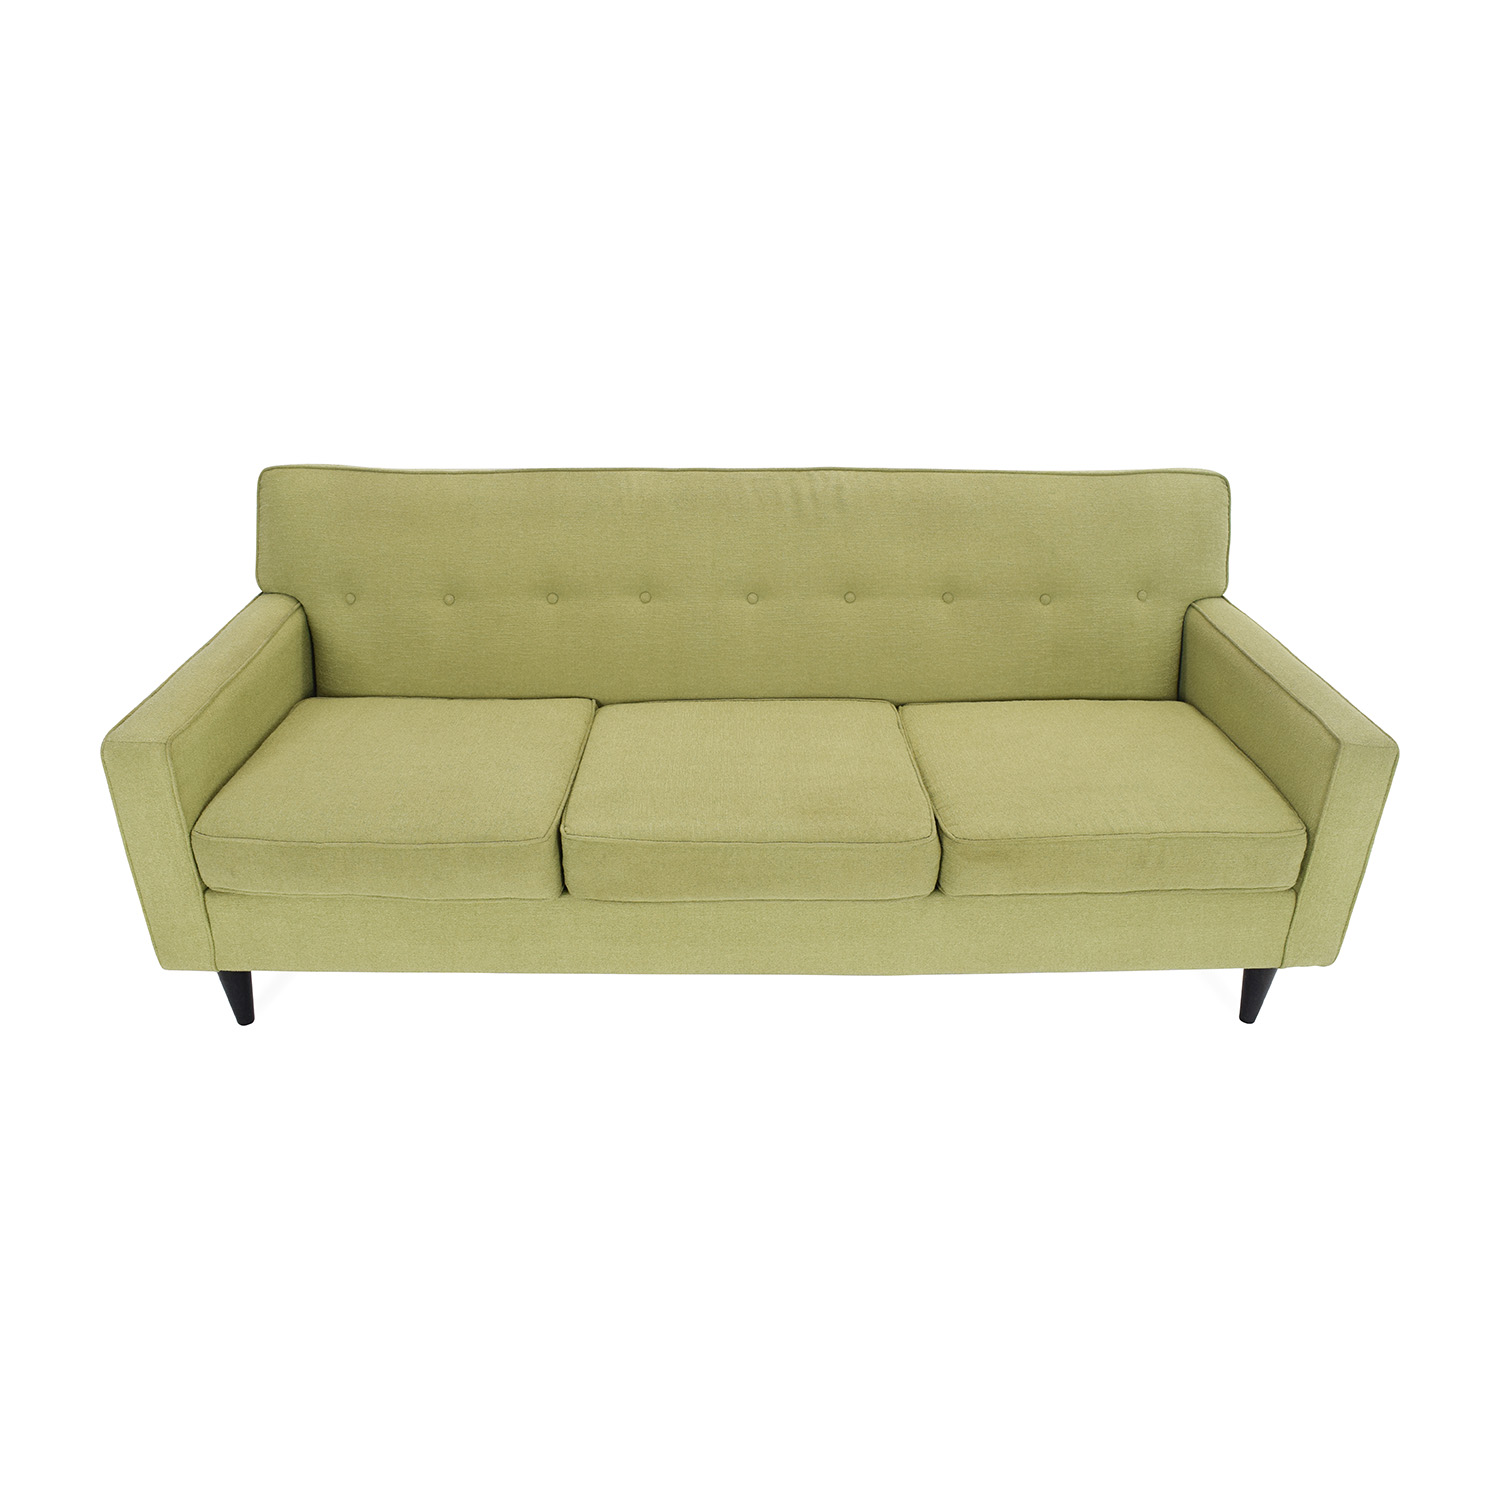 Couch Corona Coupon Code